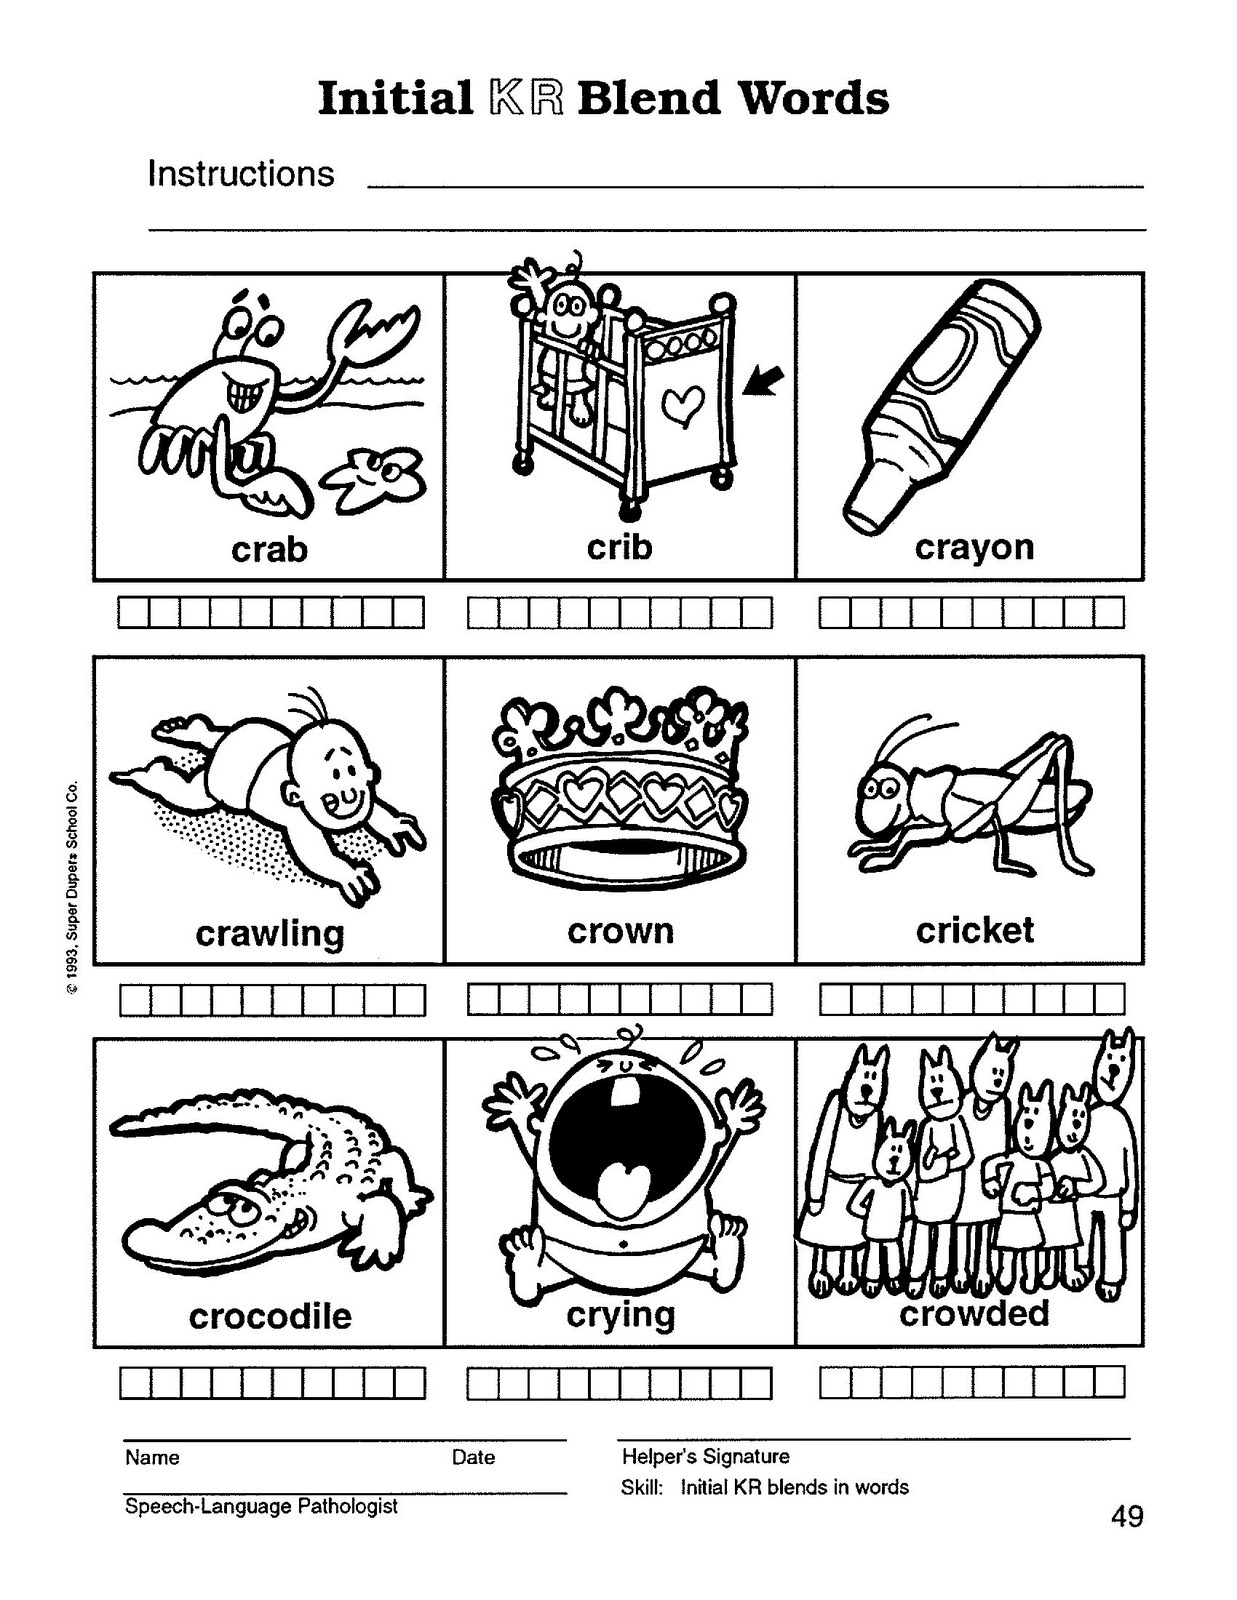 R blends worksheets free